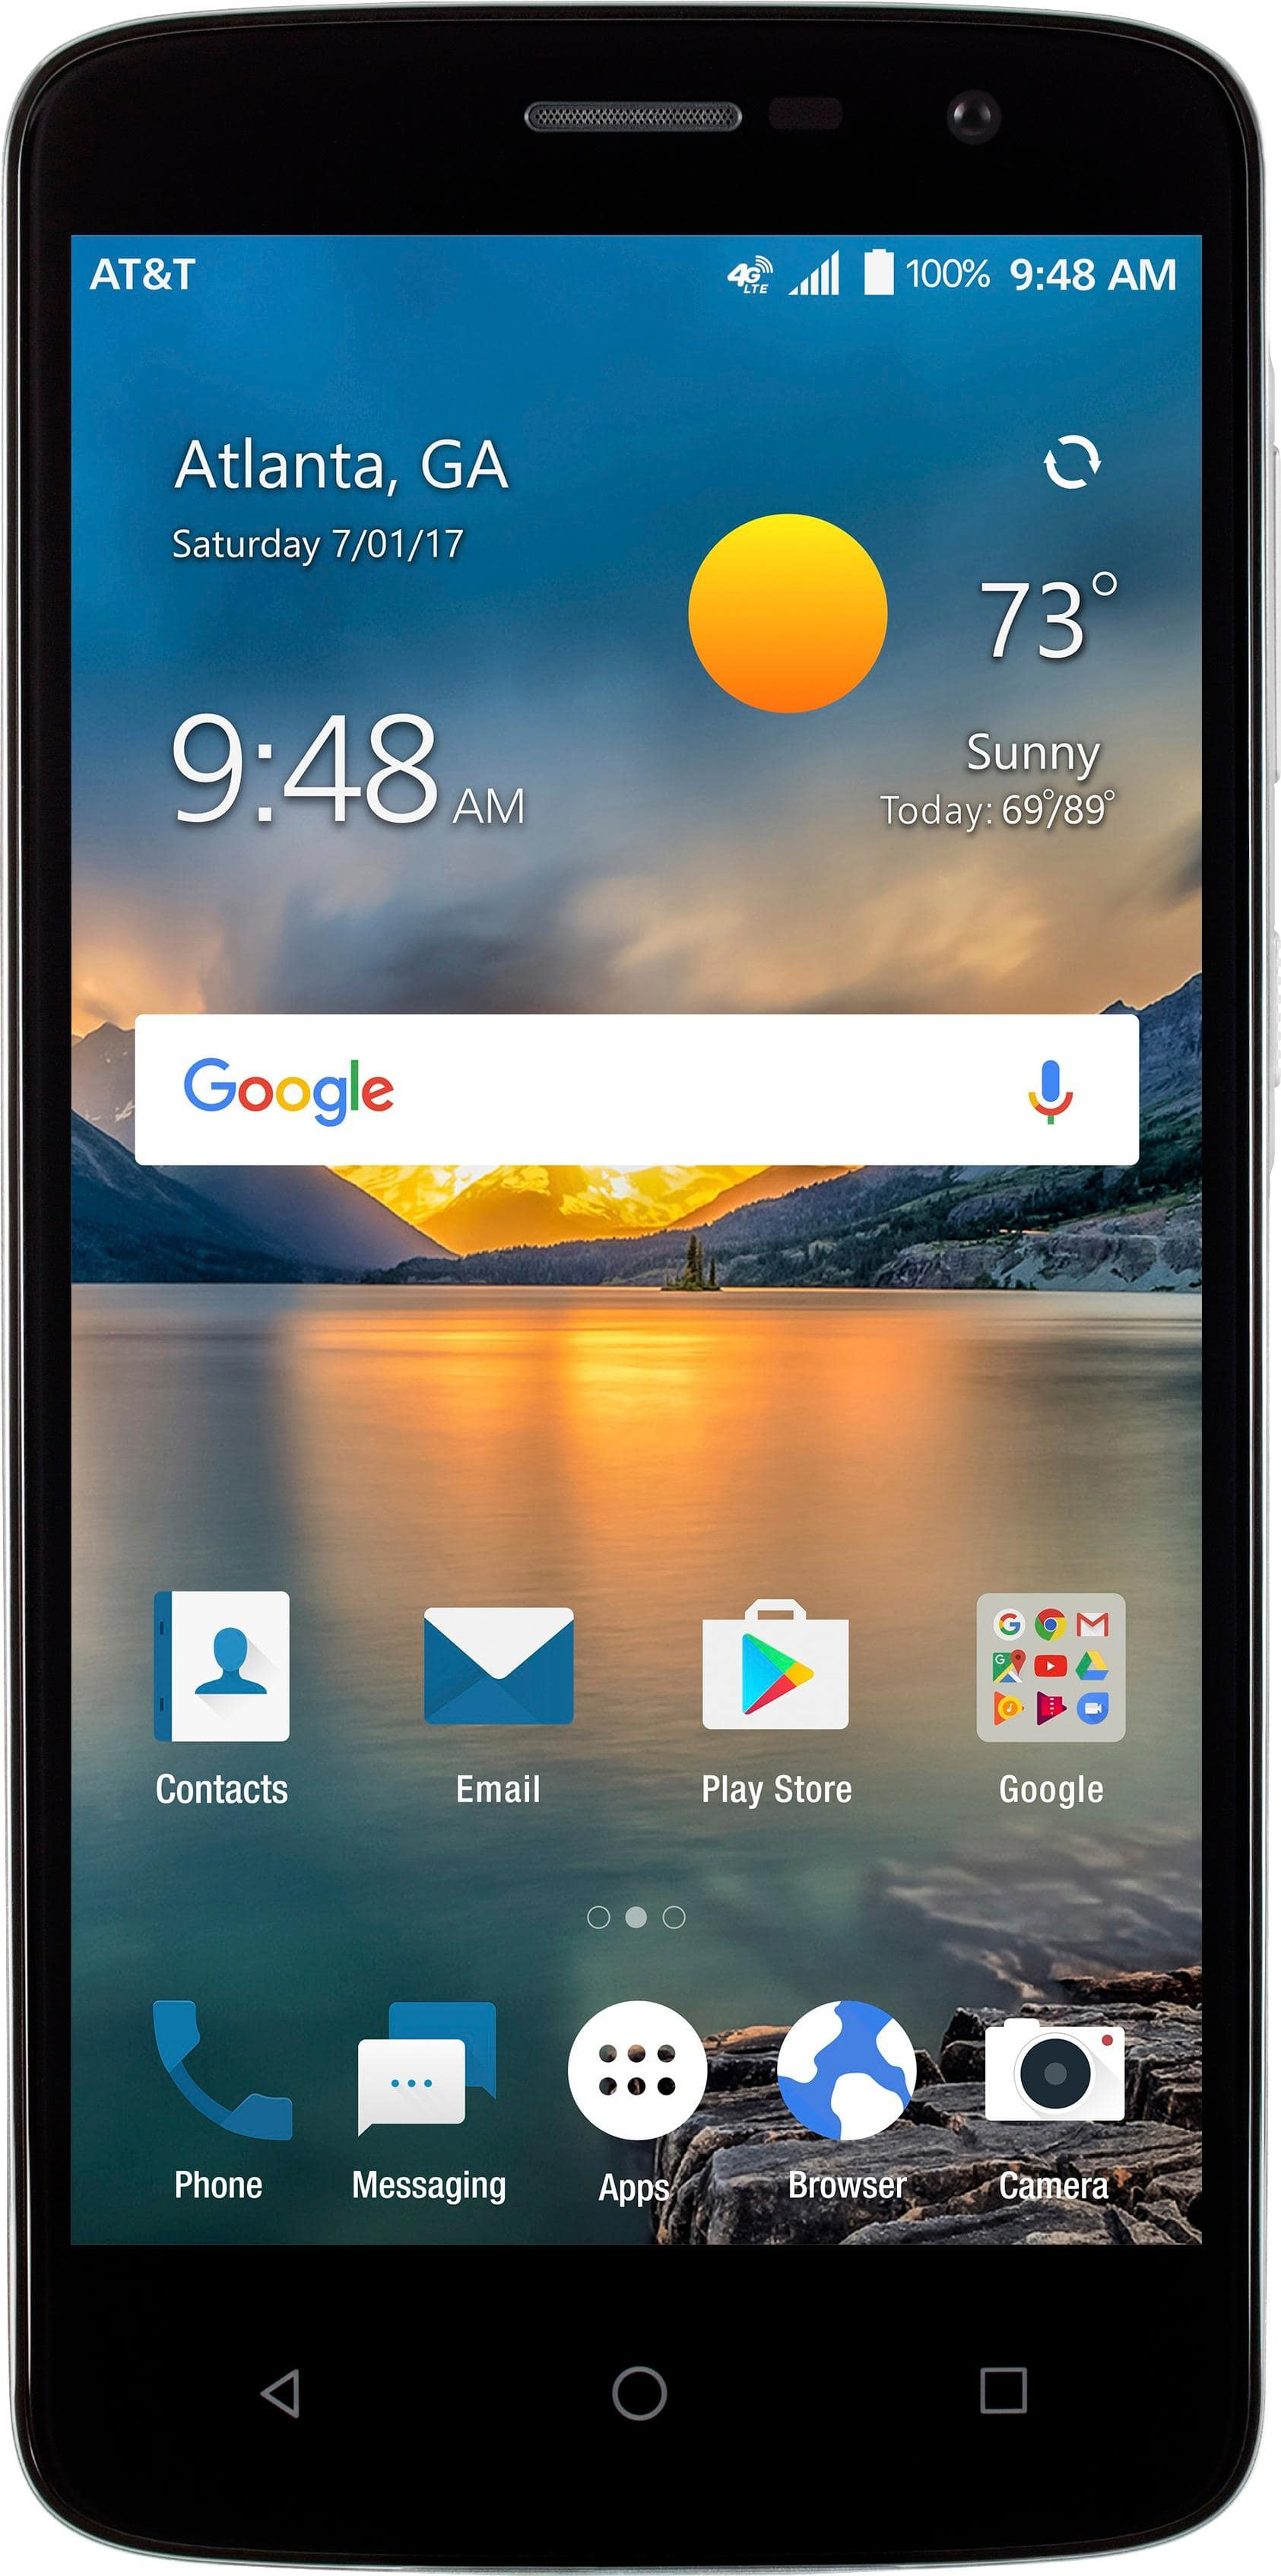 AT&T GoPhone - ZTE Blade Spark 4G with 16GB Memory Prepaid Cell Phone - Grey $69.99